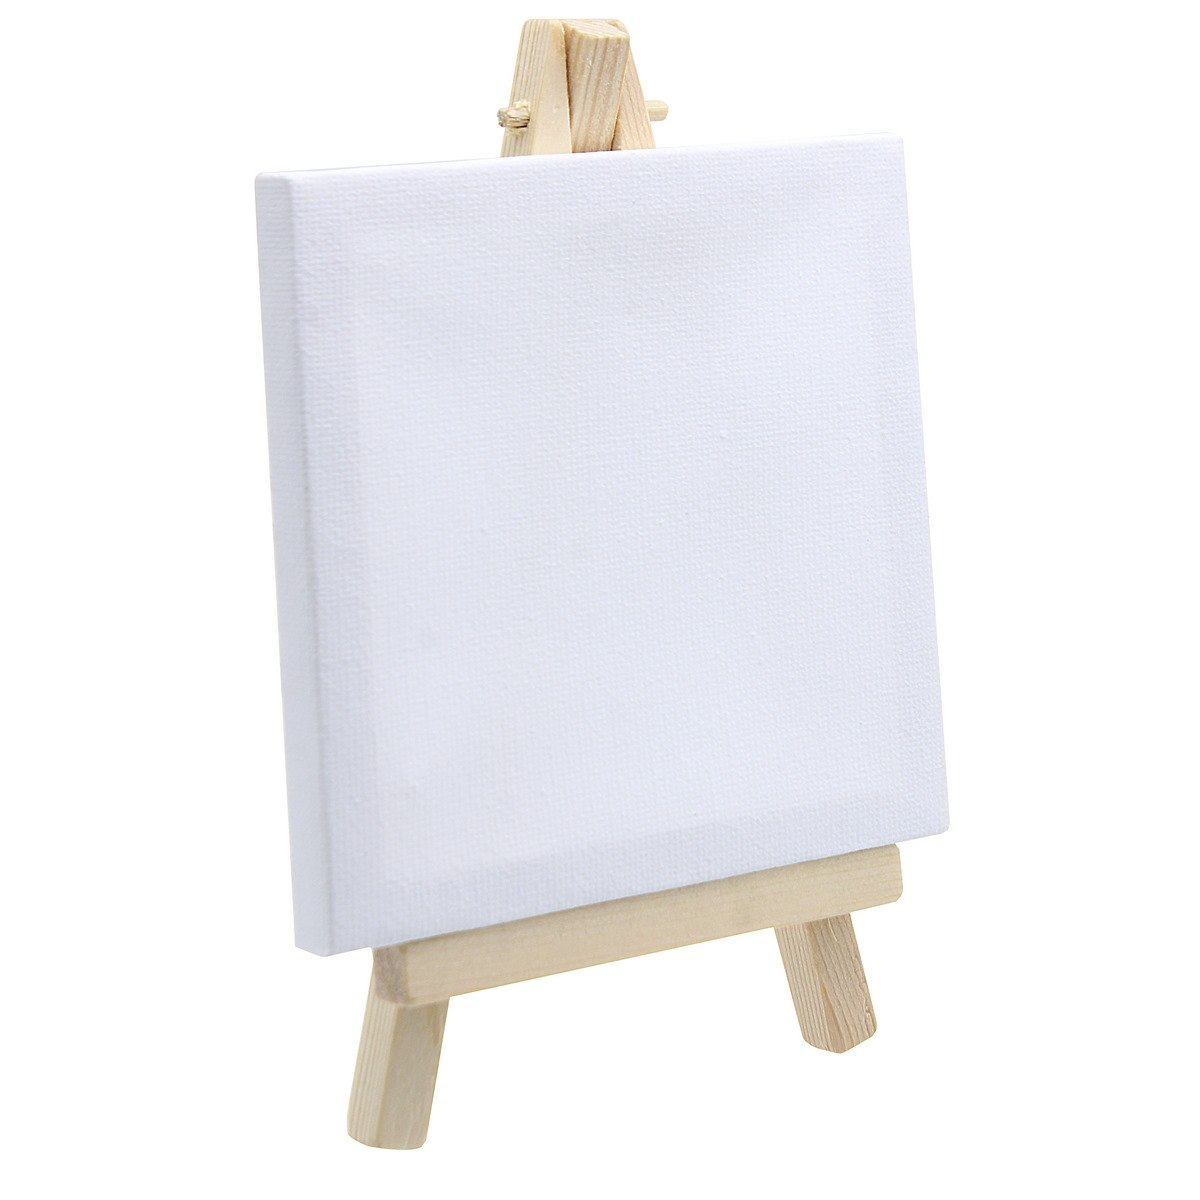 Mini Stretched Canvas With Easel (4x4 Inch)